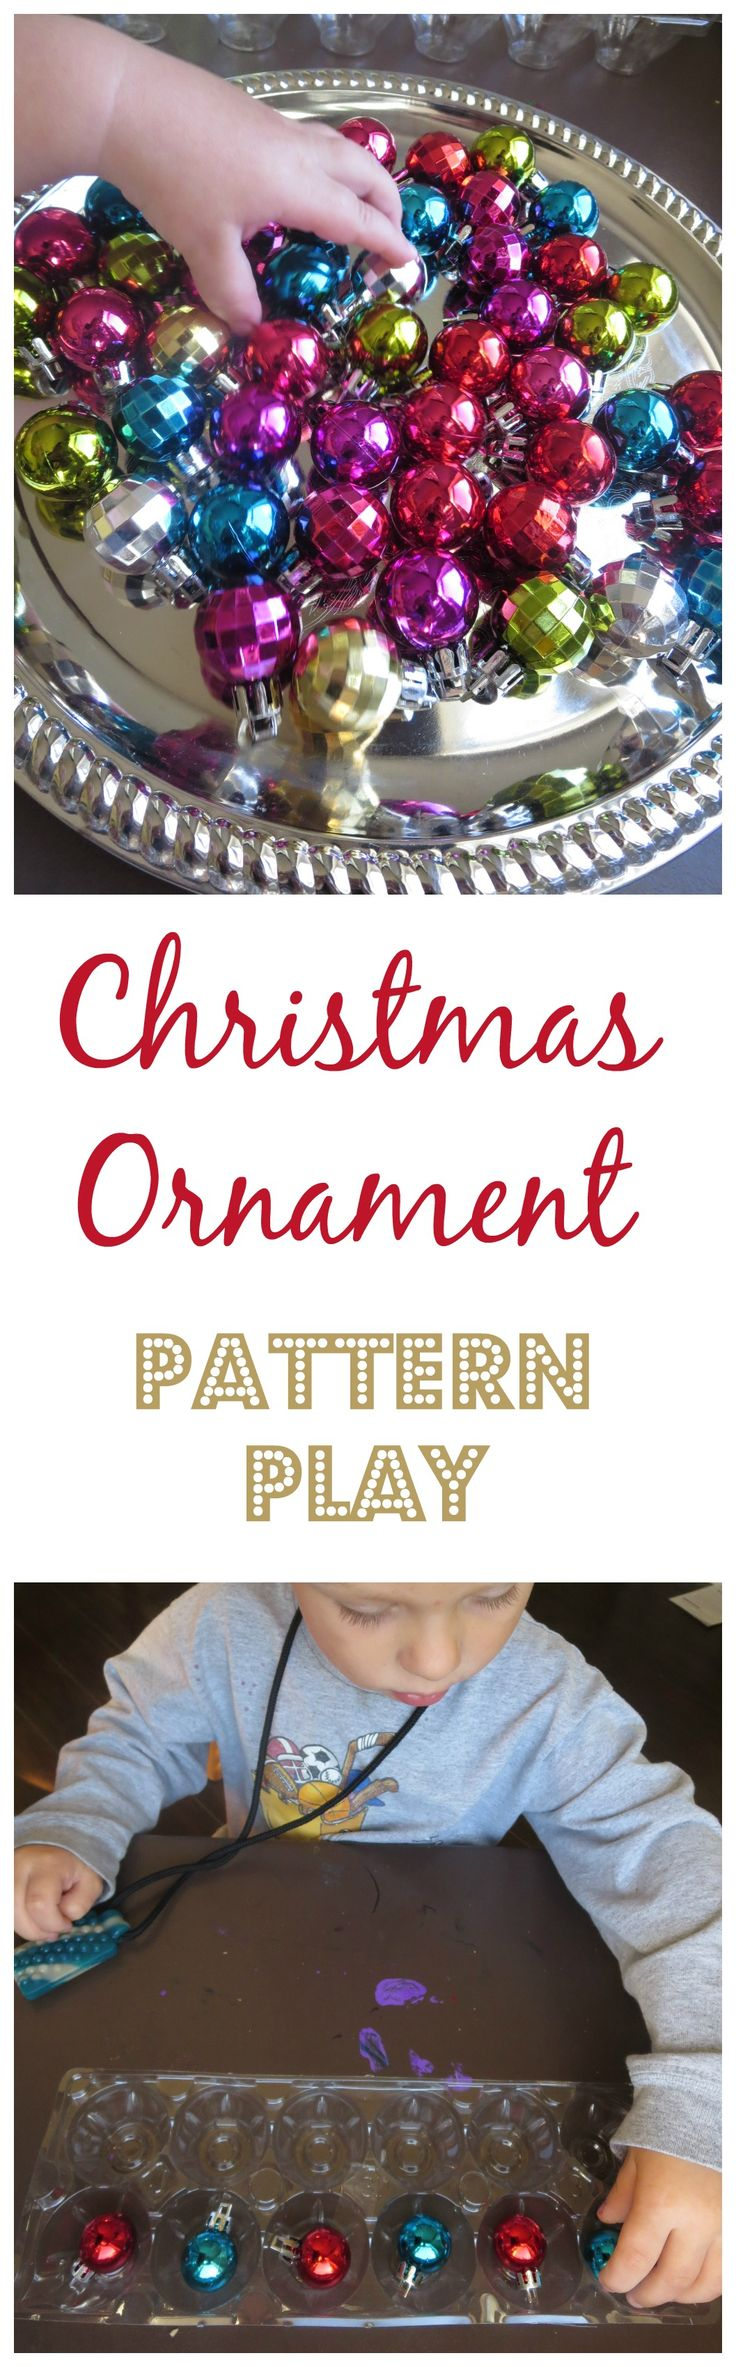 Christmas Ornament Pattern Play